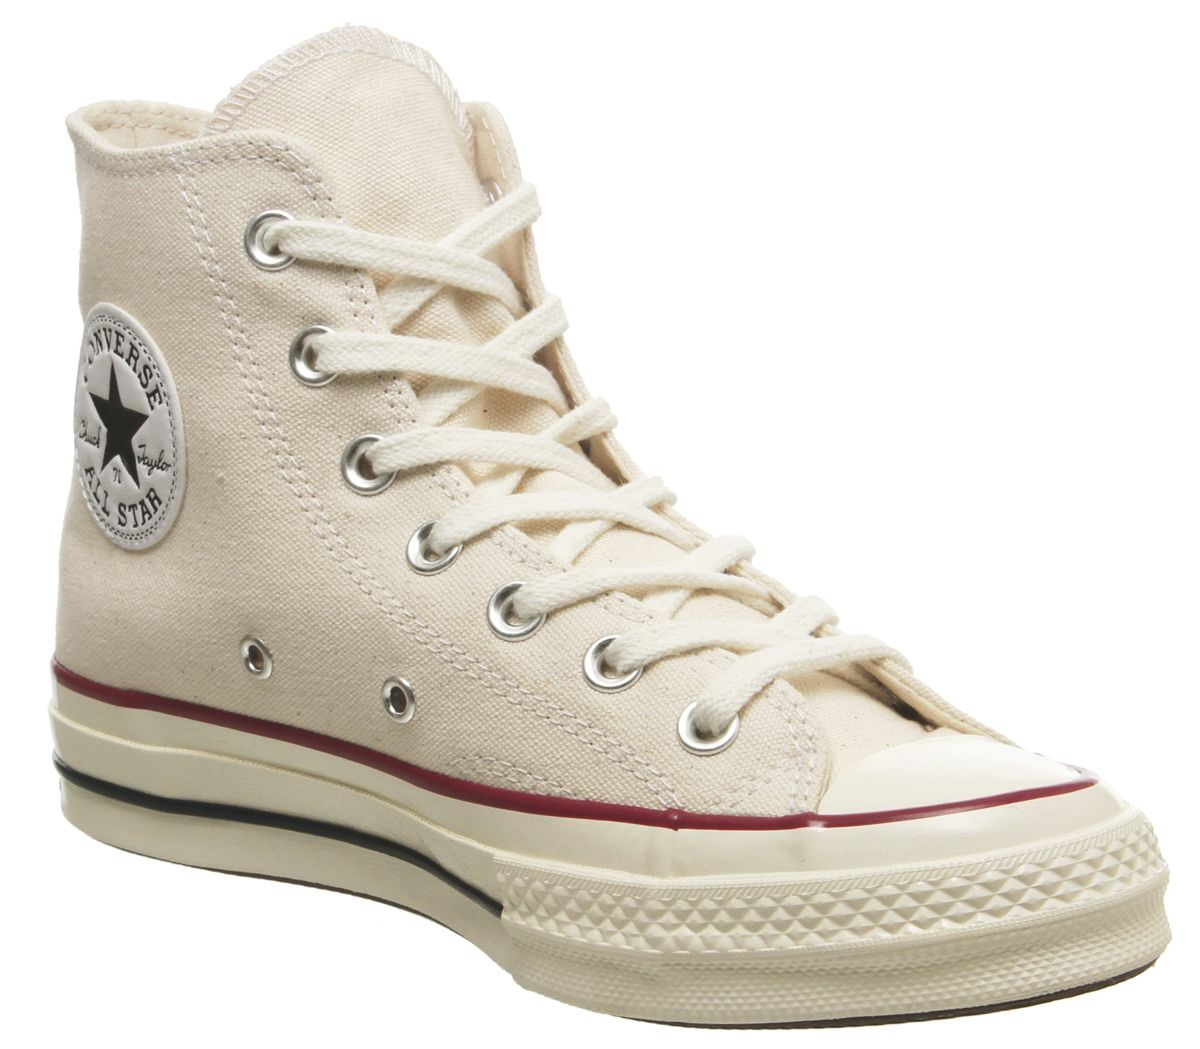 d536db87d Converse All Star Hi 70s Trainers Parchment - Hers trainers